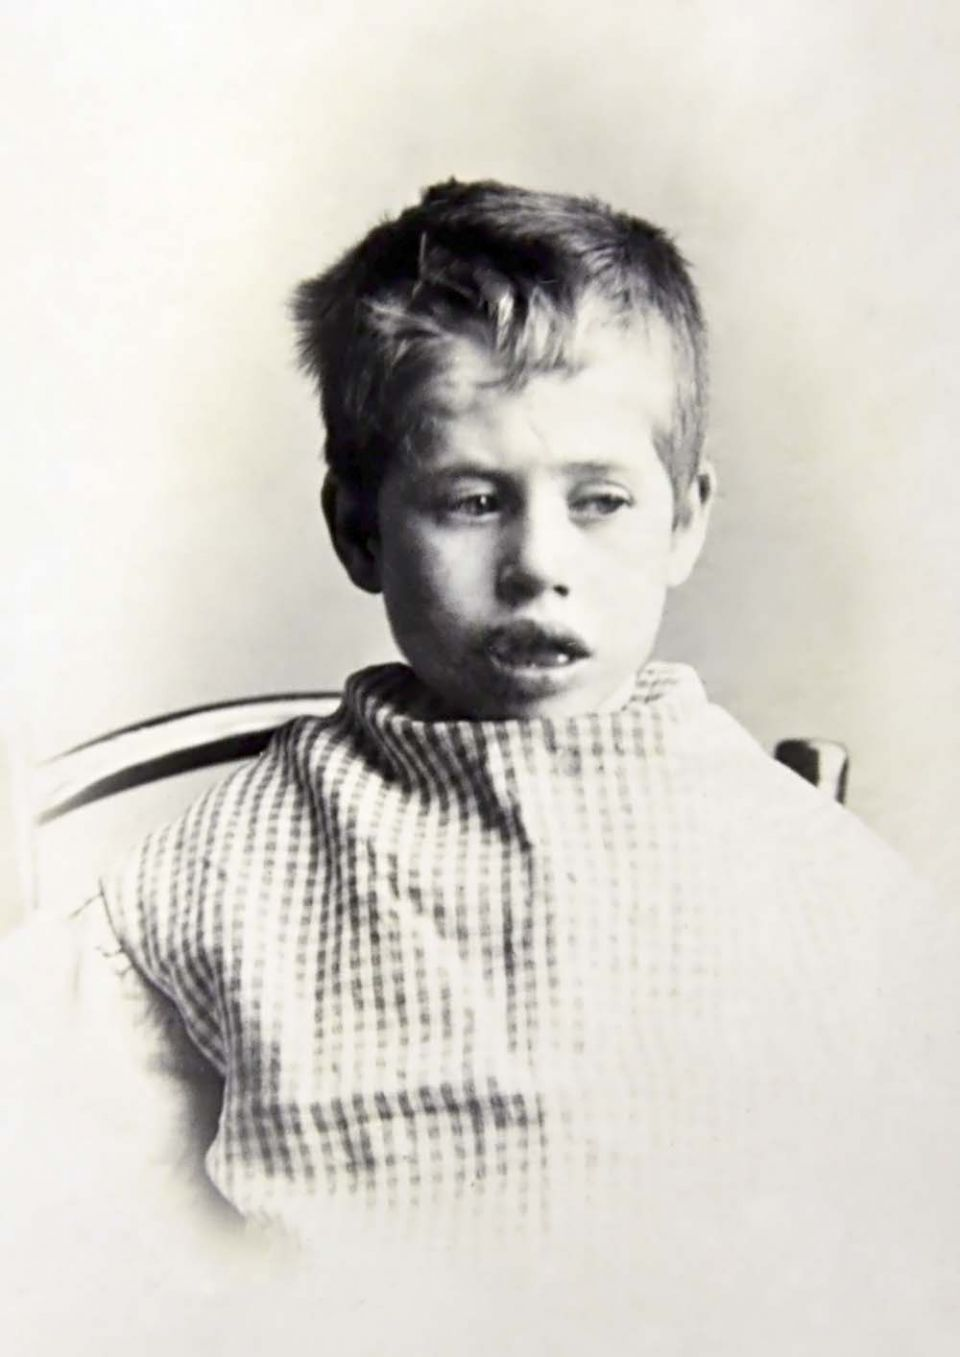 harry emmett child aged 9 bradford 1899 sm.jpg